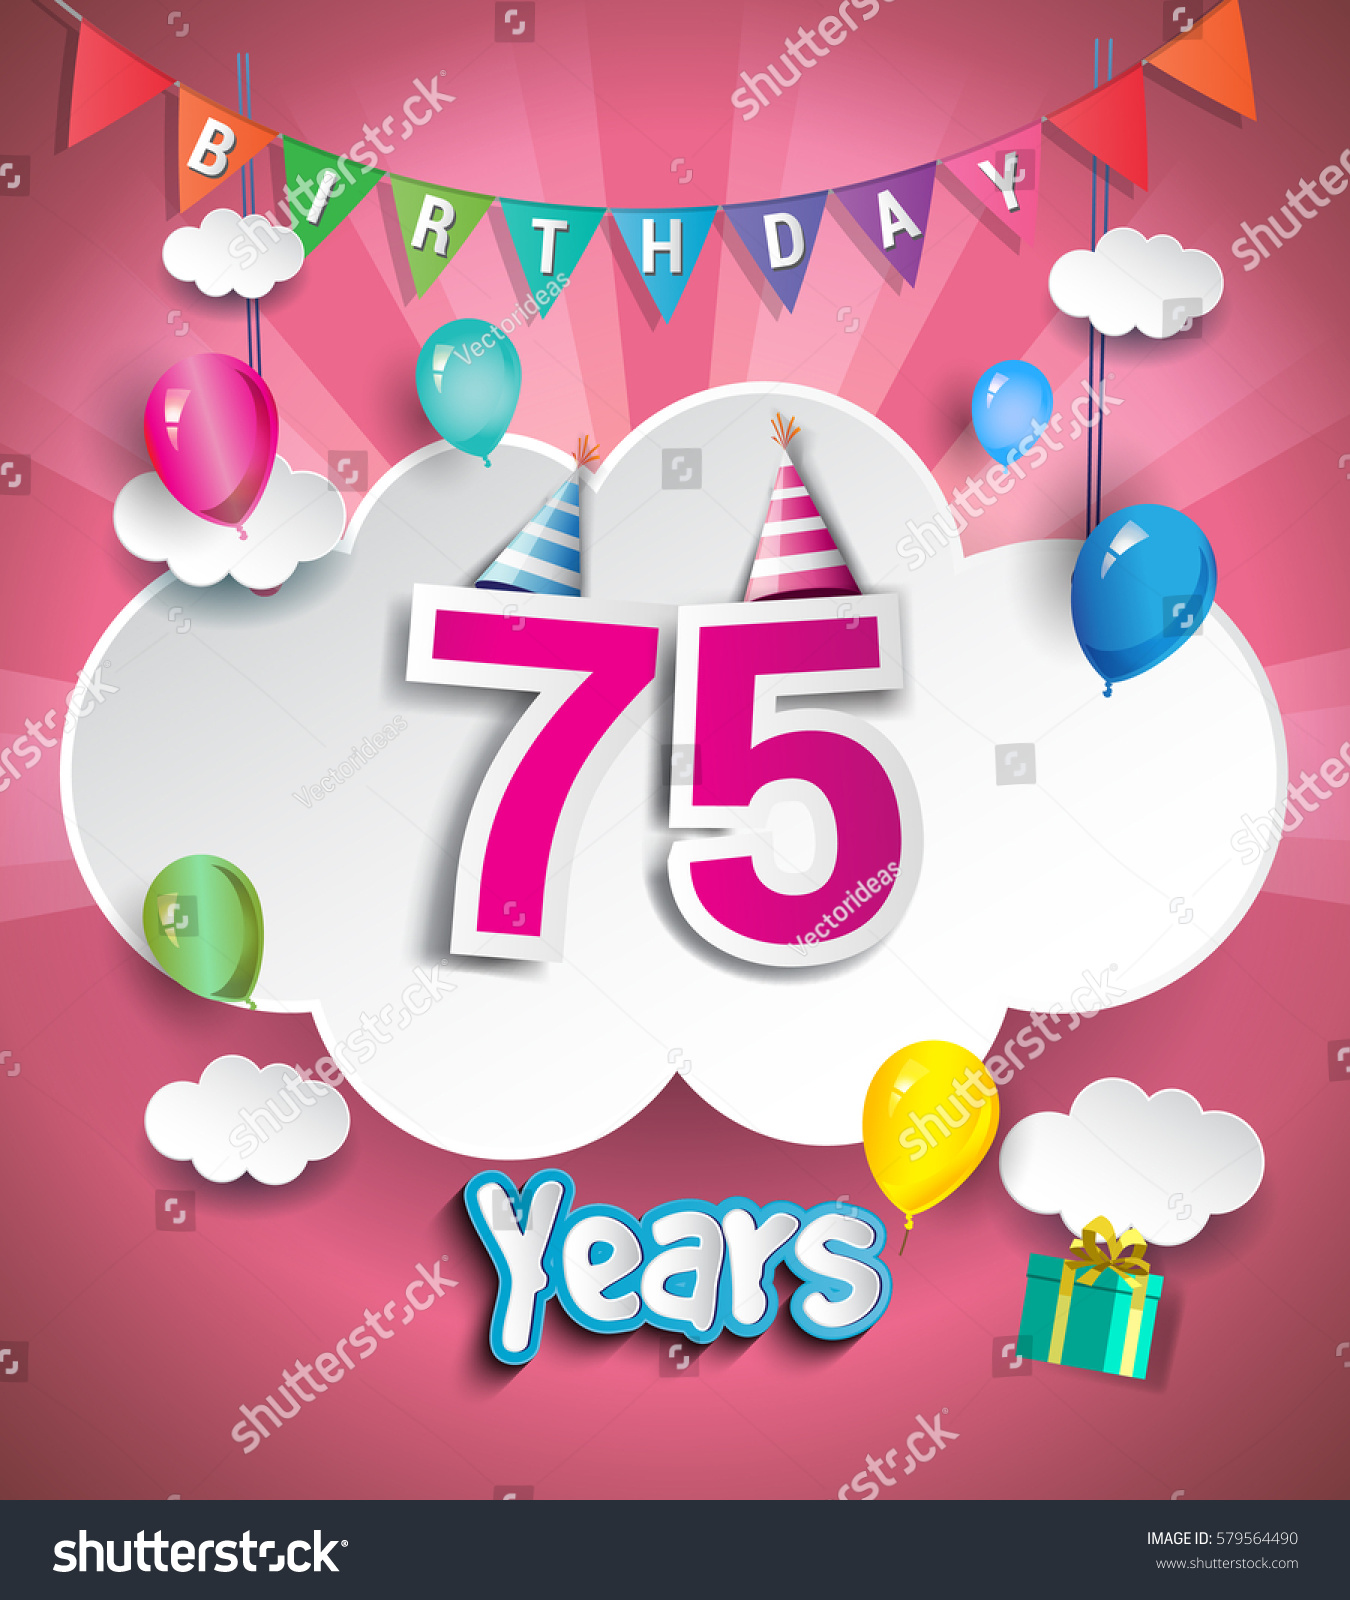 75 Years Birthday Design Greeting Cards Stock Vector Royalty Free